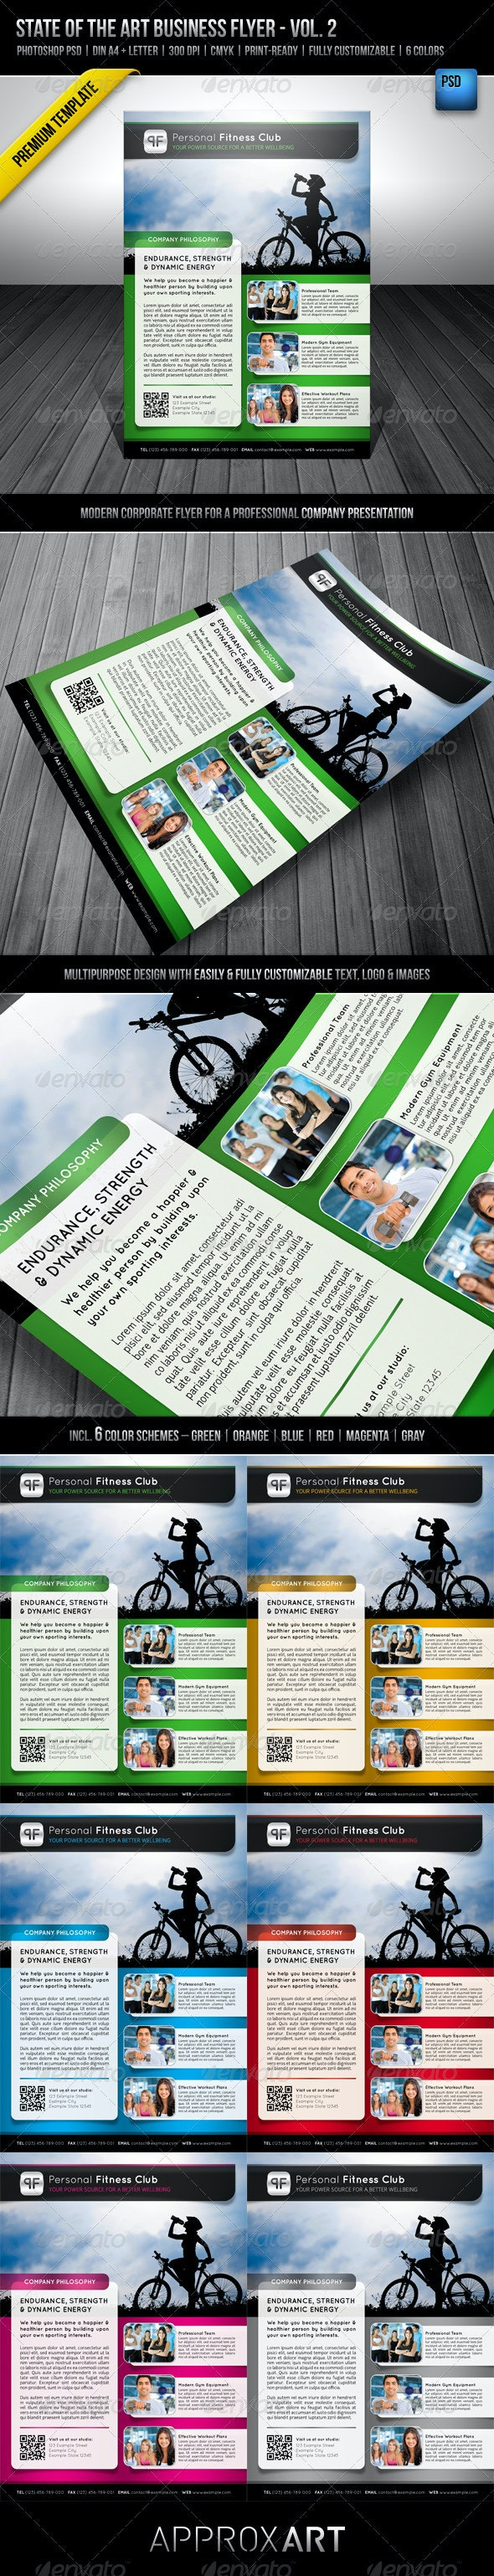 State of the Art Business Flyer - Vol. 2 - Corporate Flyers